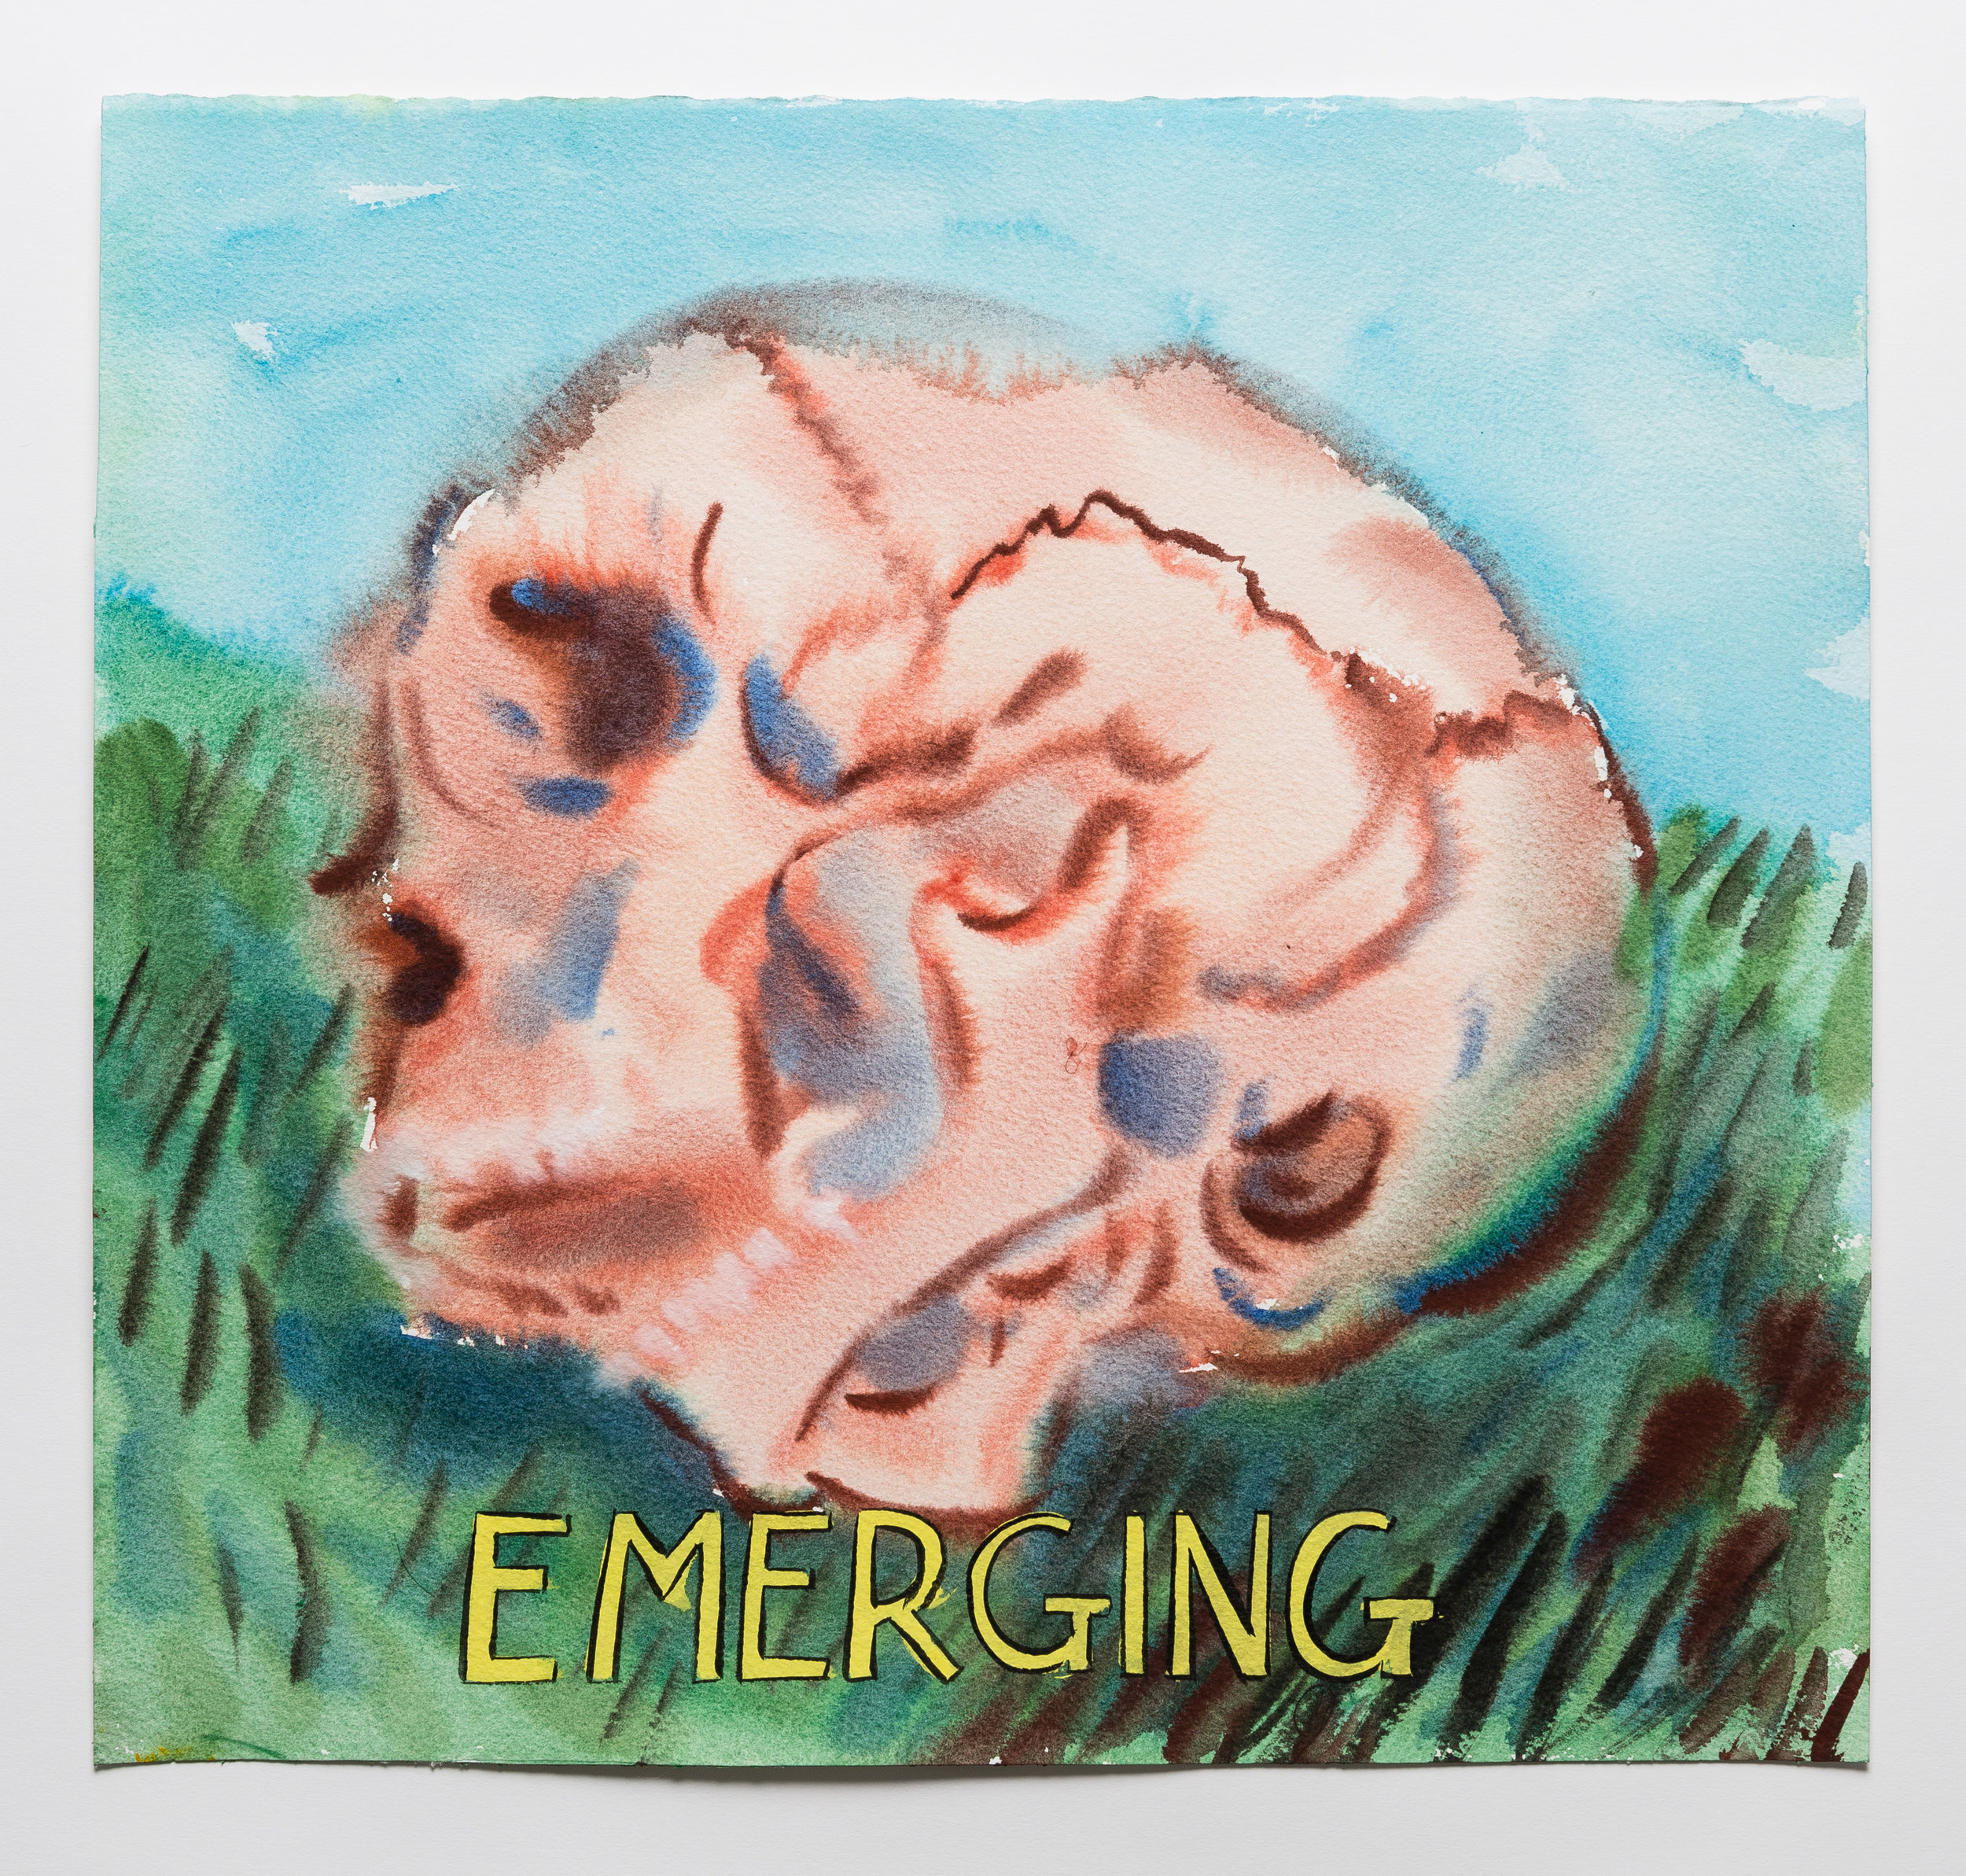 Emerging  2015 watercolor, gouache and ink on paper, 15 x 16""